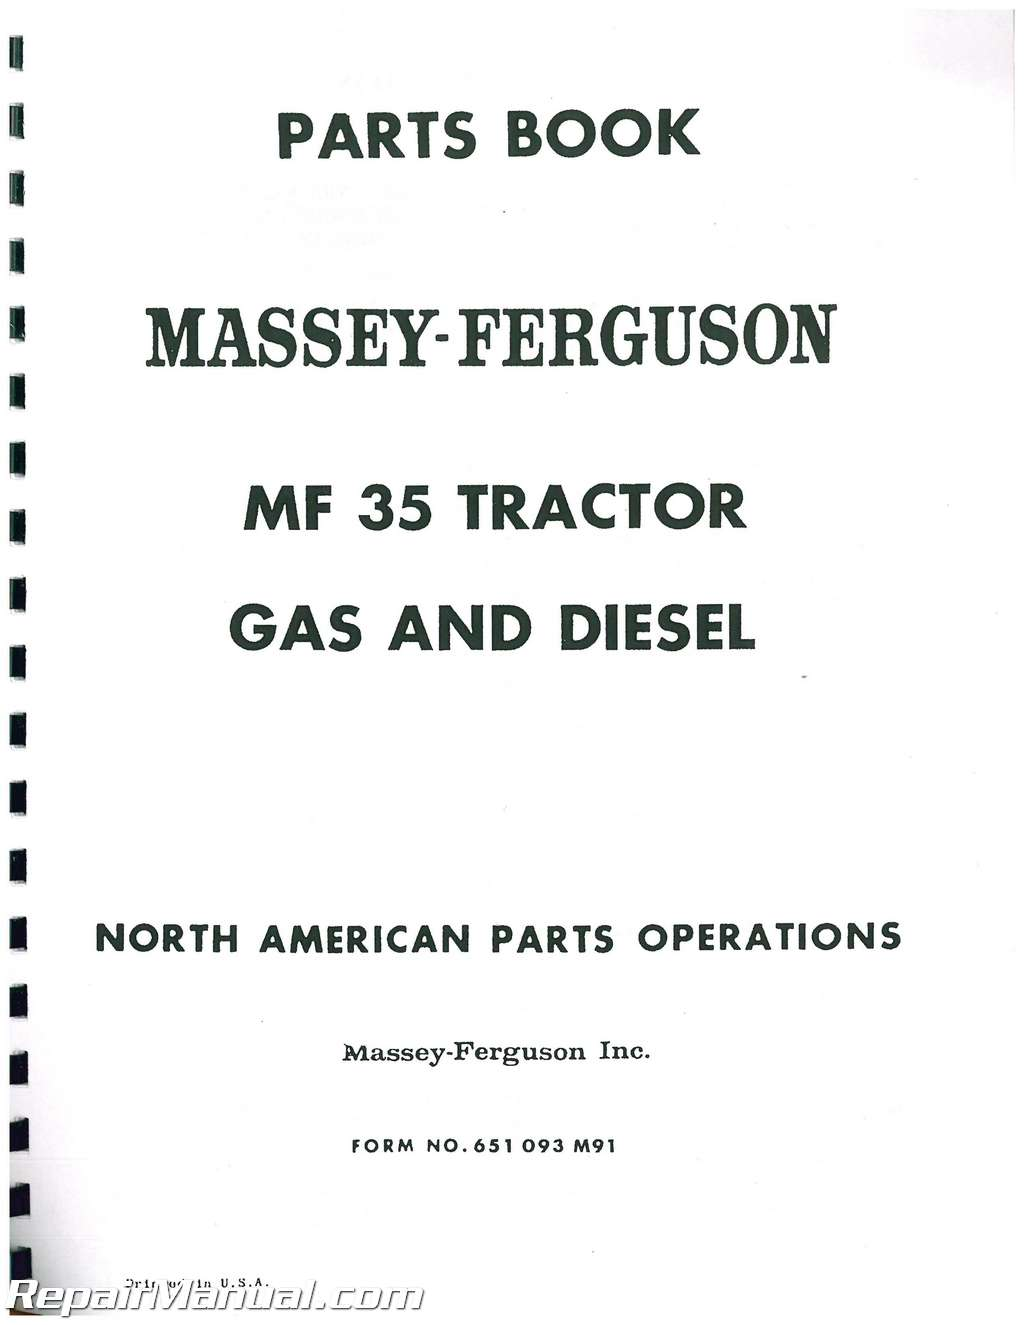 Mf35 Wiring Diagram 19 Images Diagrams Iota Emergency Ballast Massey Harris Ferguson Mf 35 Gas Diesel Tractor Parts Manual 001resize Mf65 Schematics